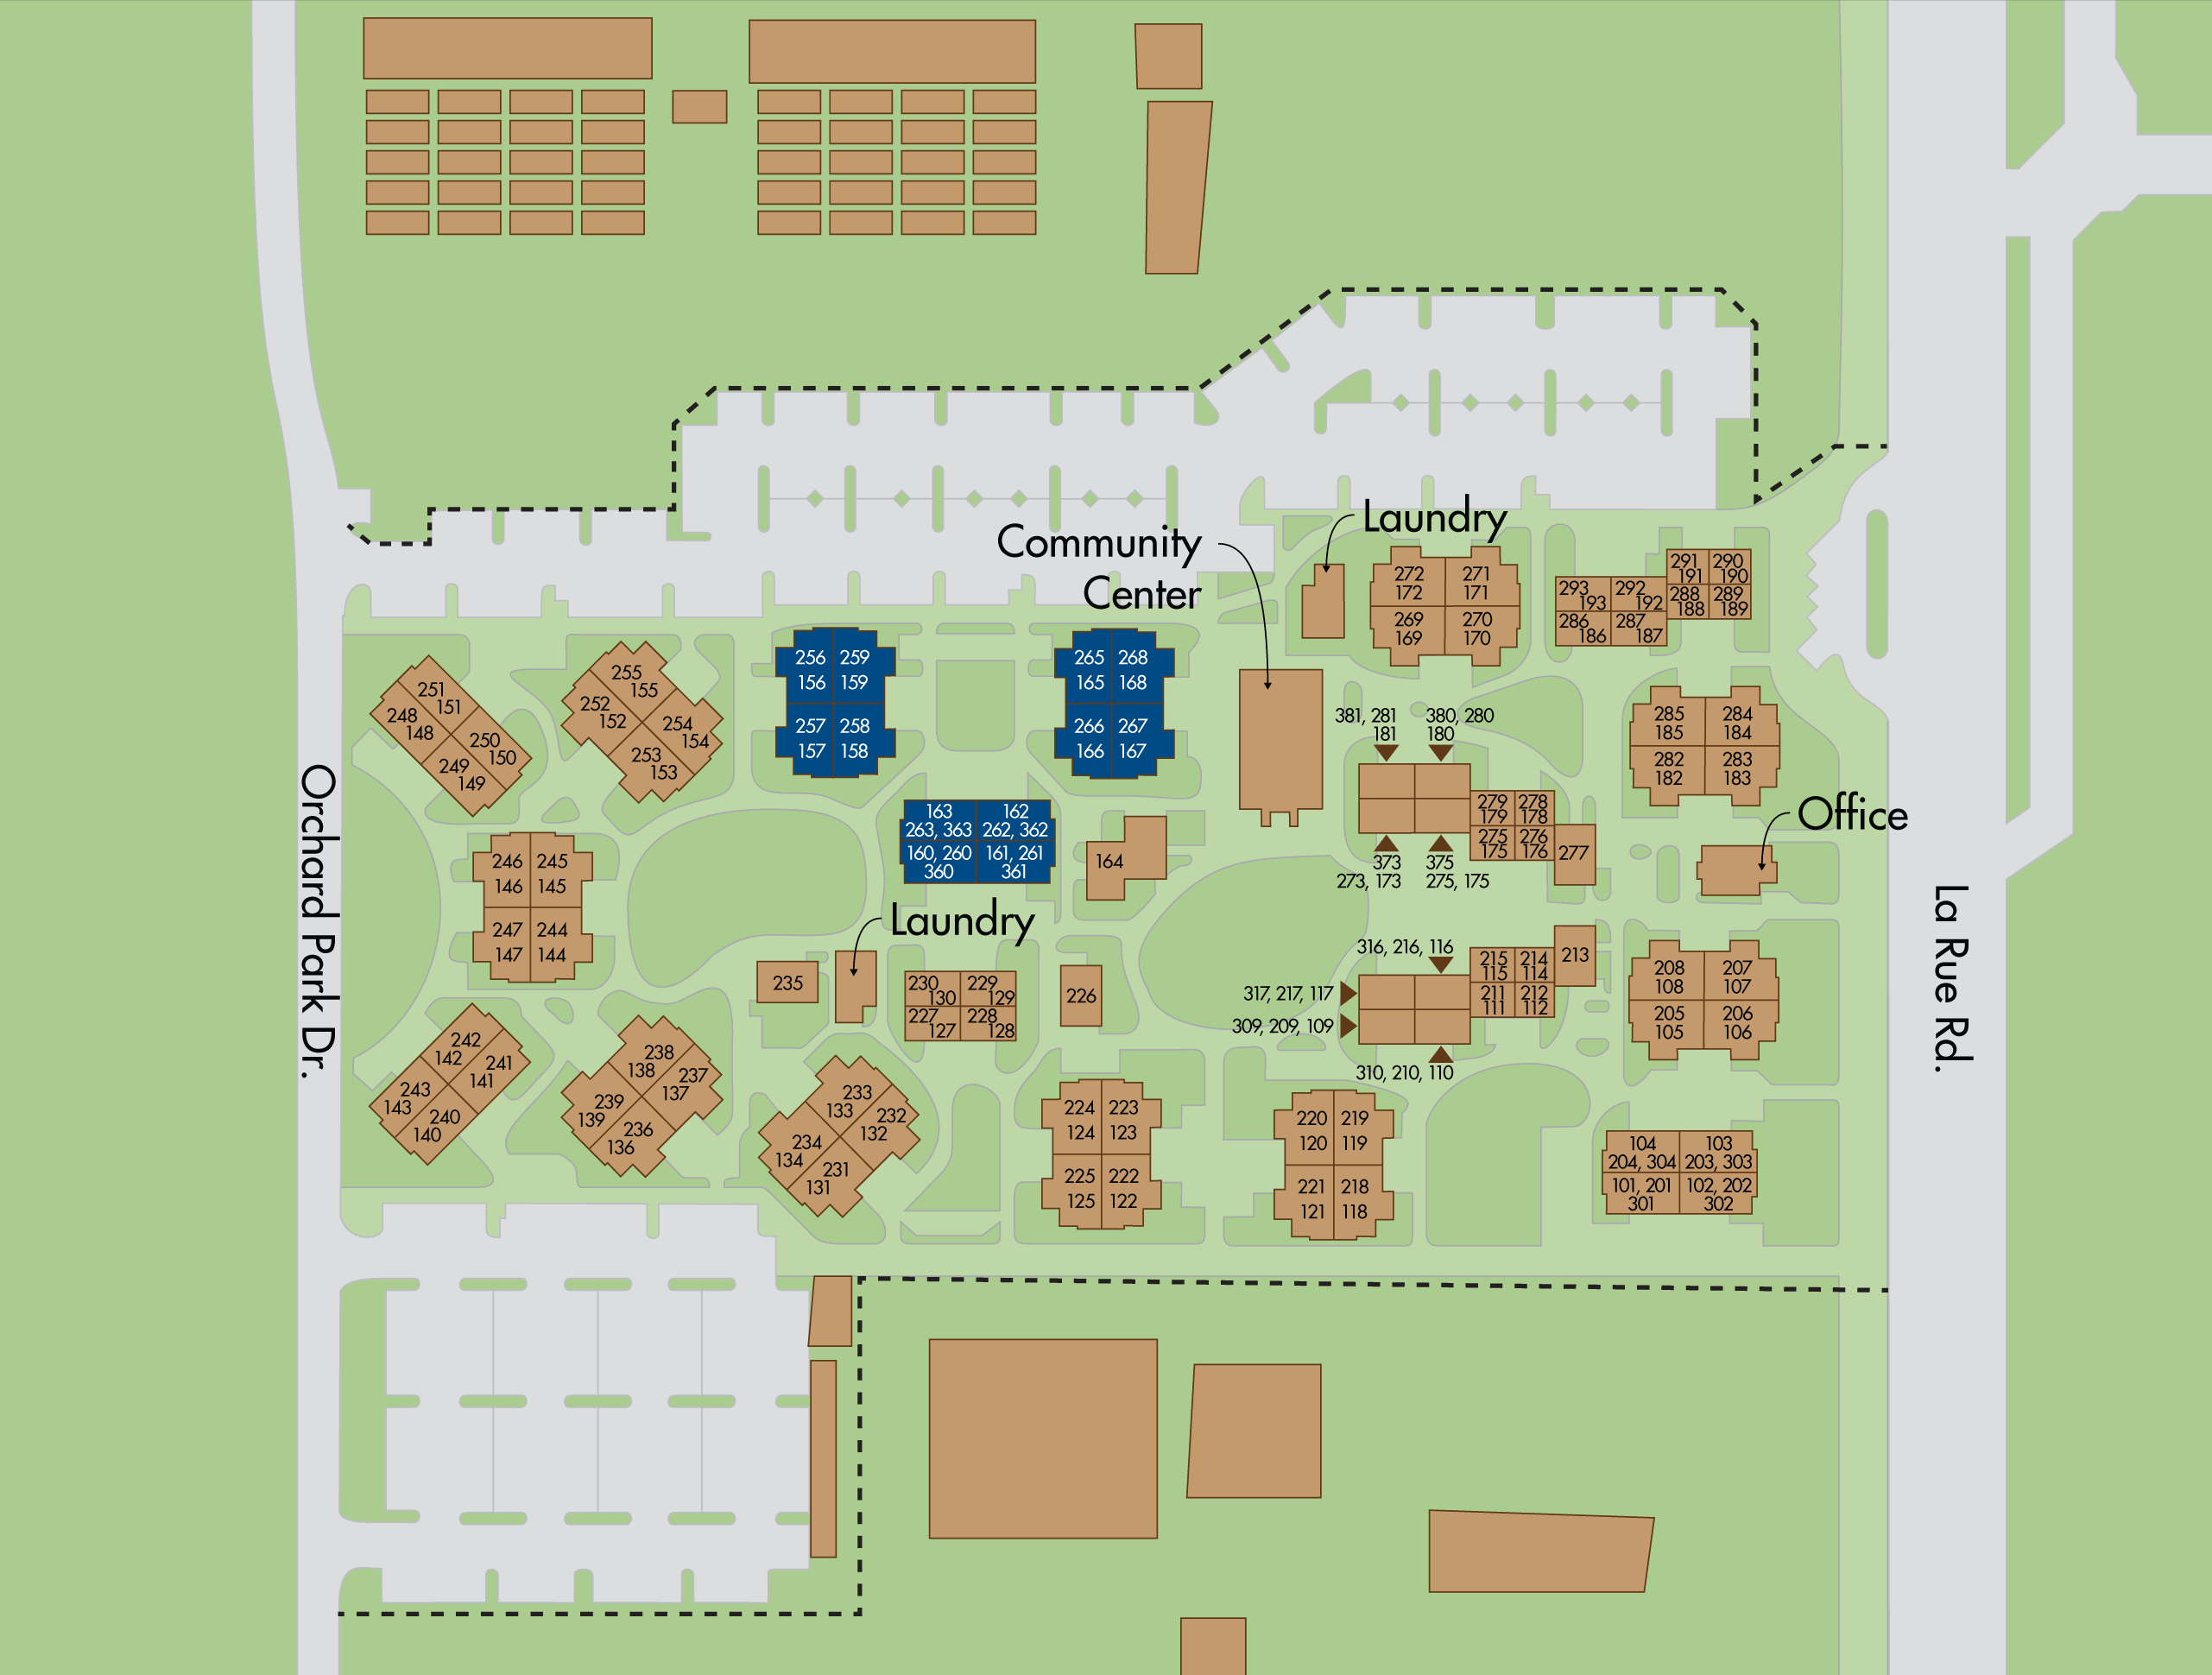 Map of The Colleges apartments